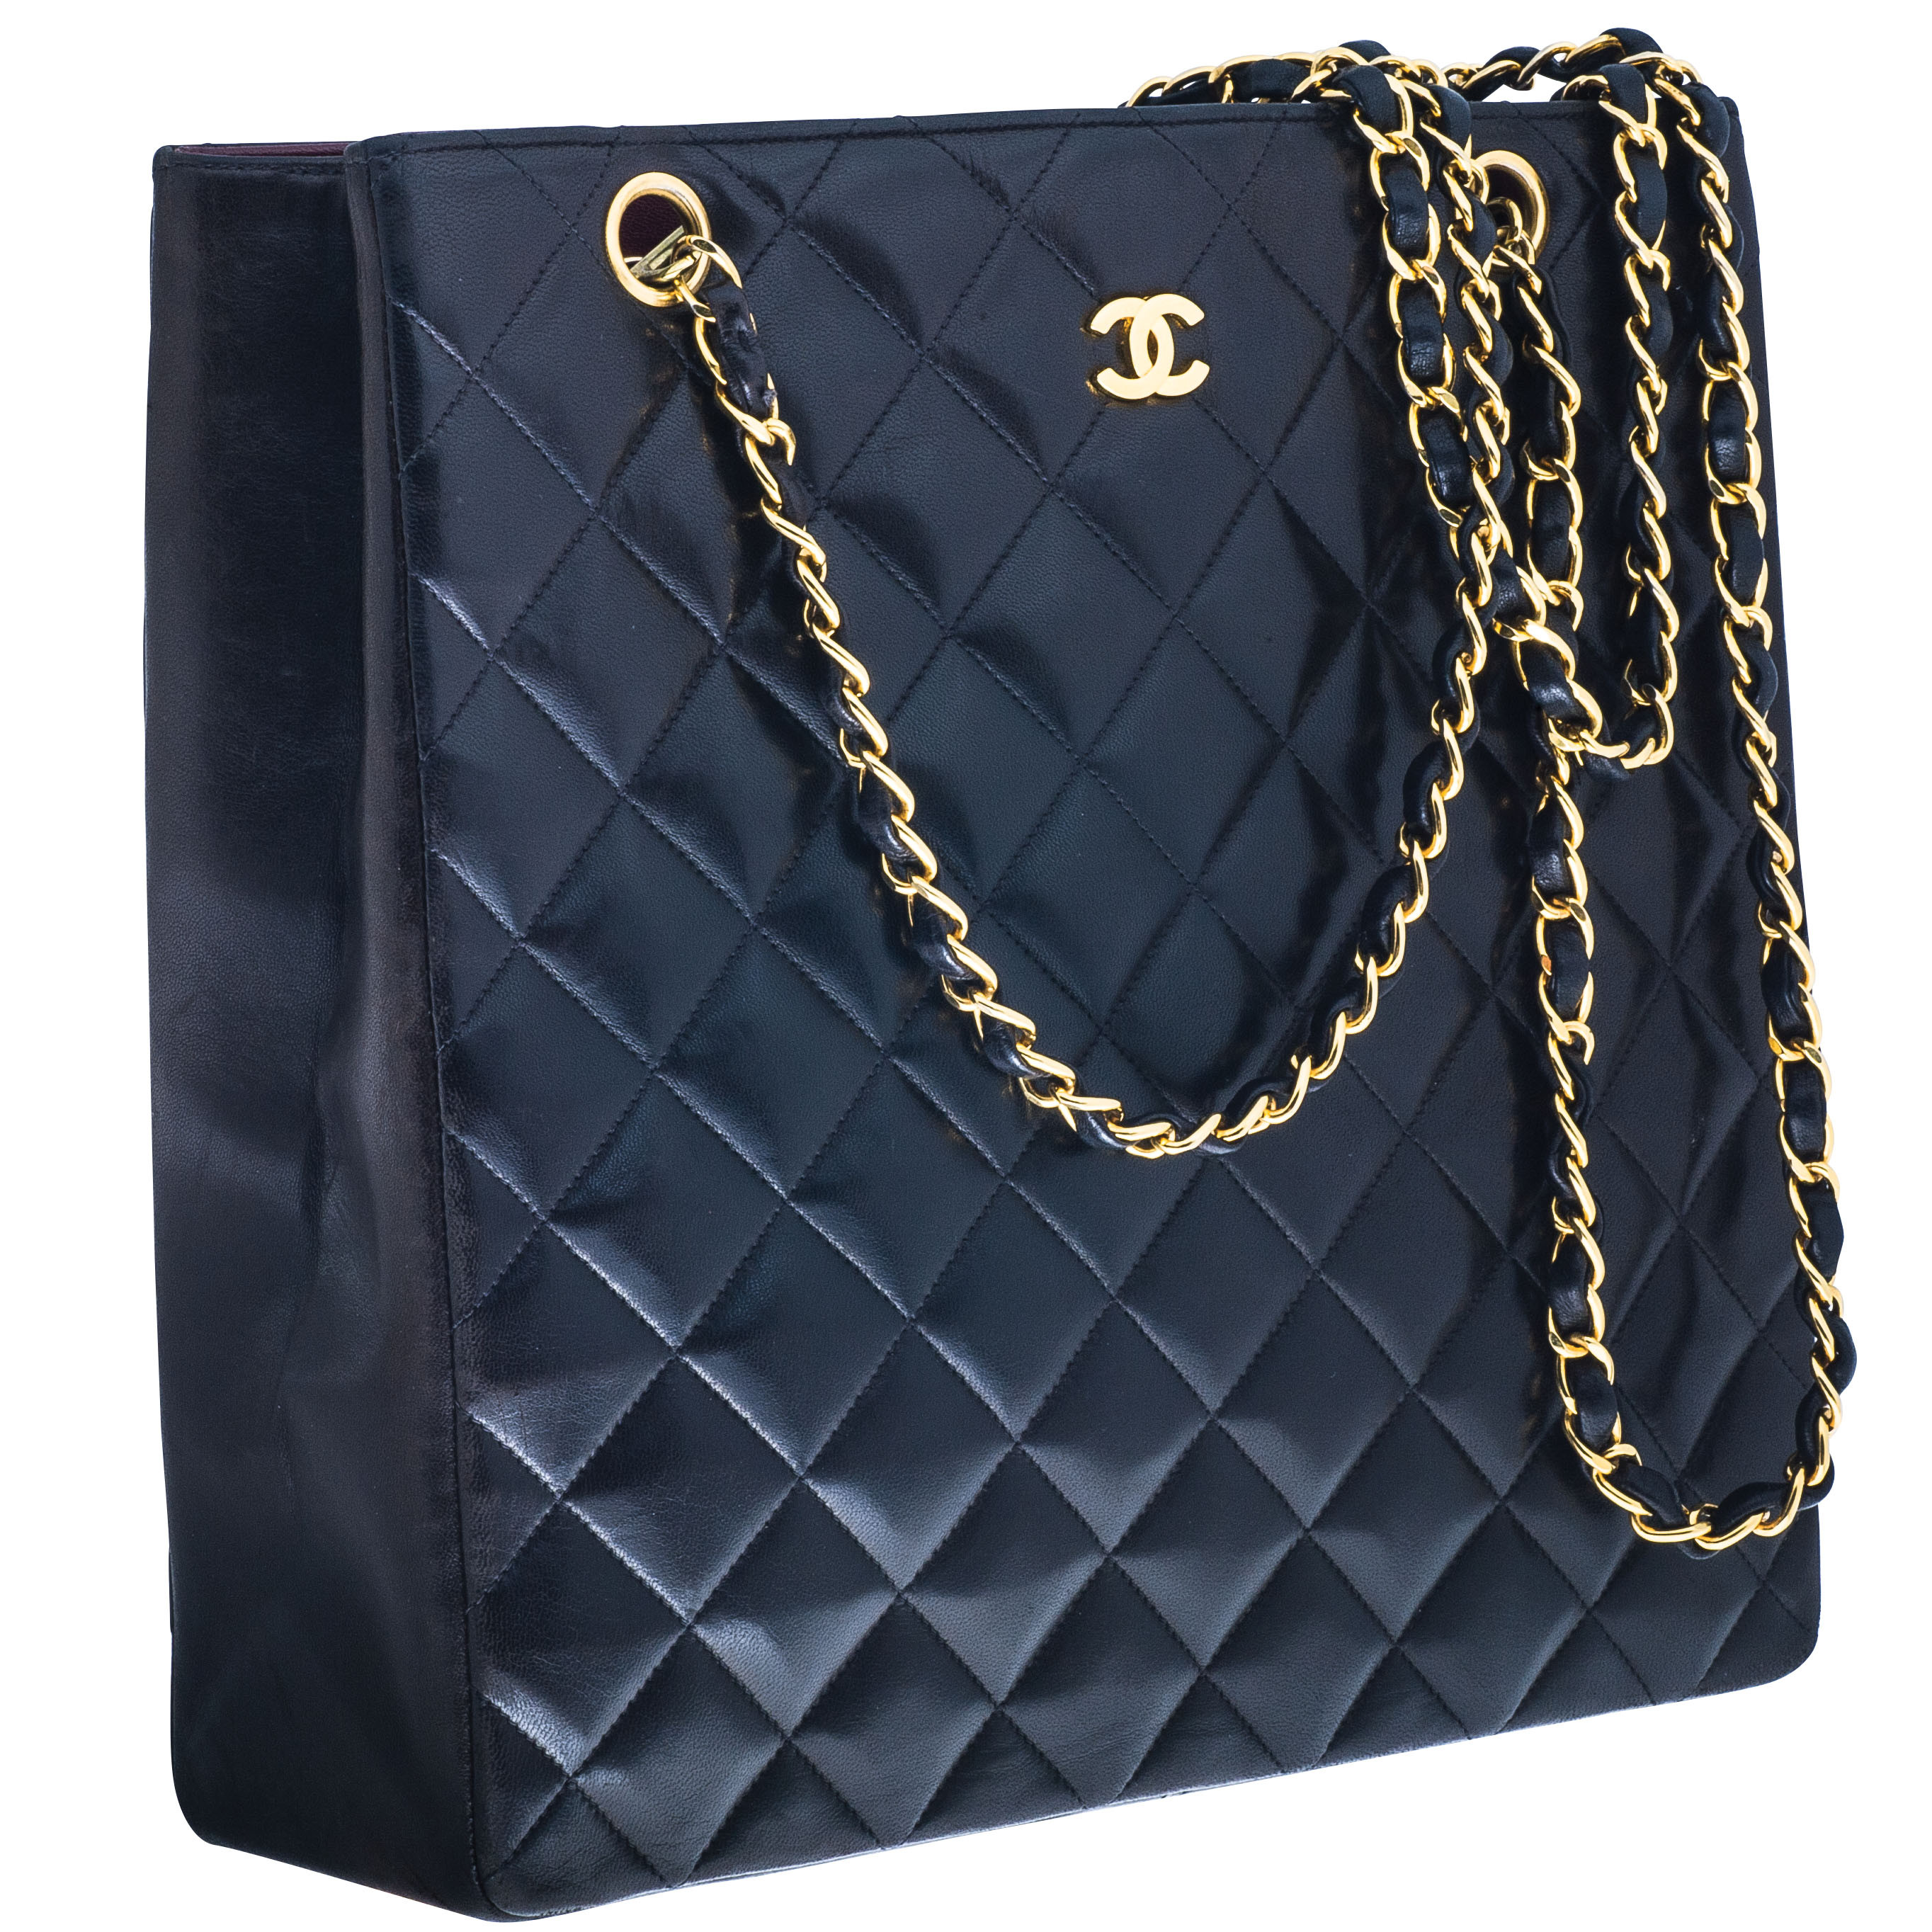 Vintage Chanel Leather Handbag